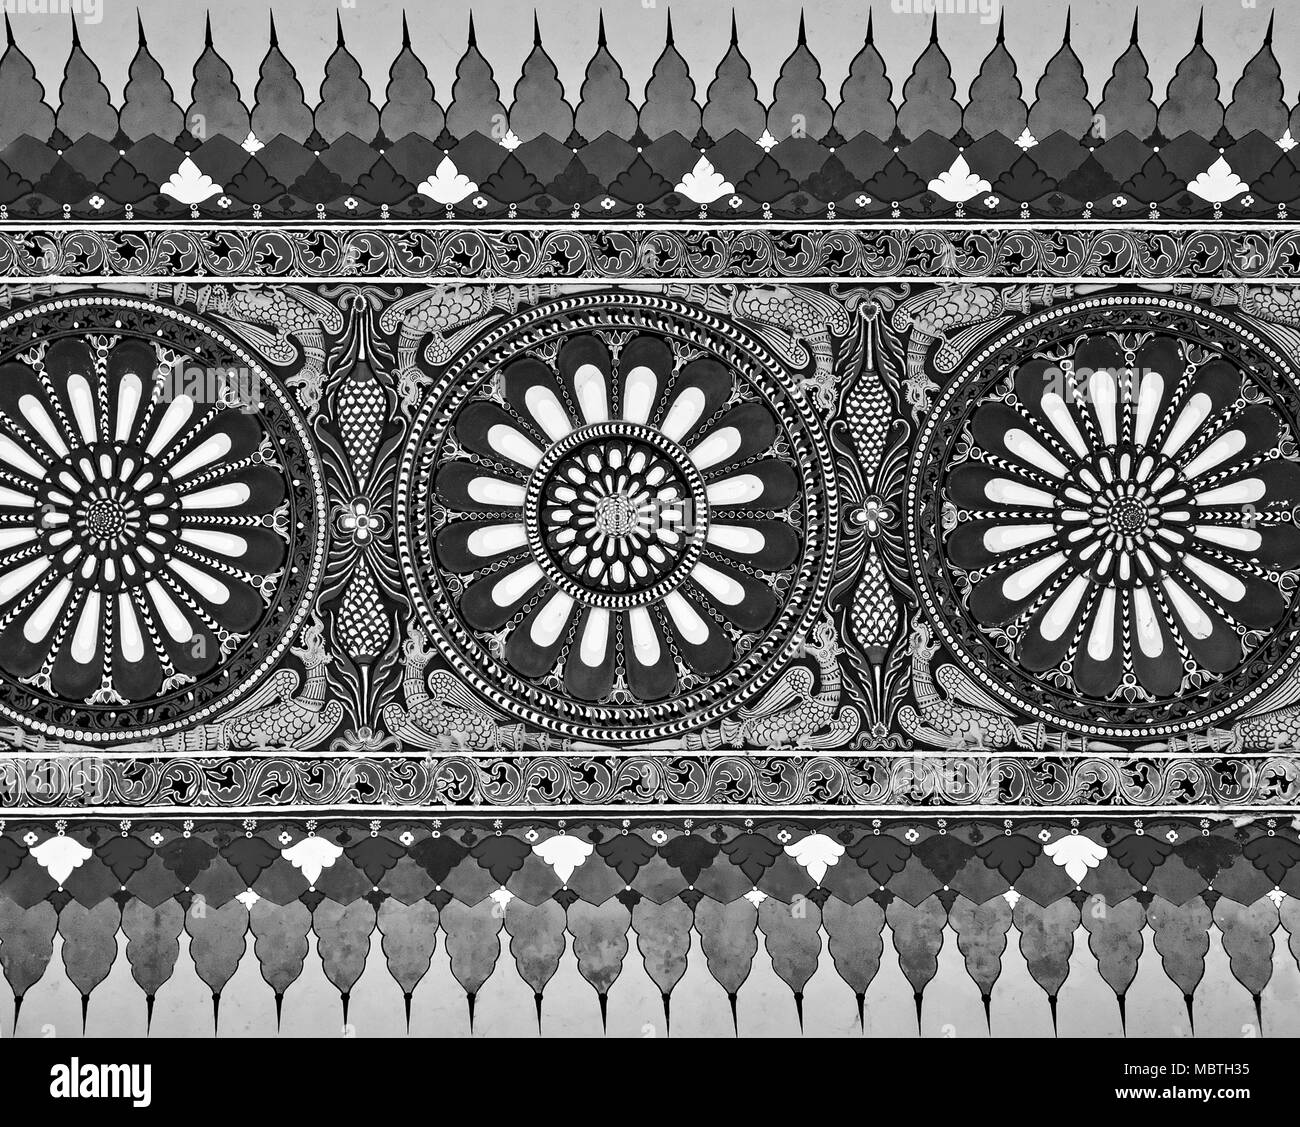 AGRA, INDIA - MARCH 23: Pattern on Taj Mahal on March 23, 2012 in Agra, India. Taj Mahal is widely recognized as the jewel of Muslim art and one of th - Stock Image